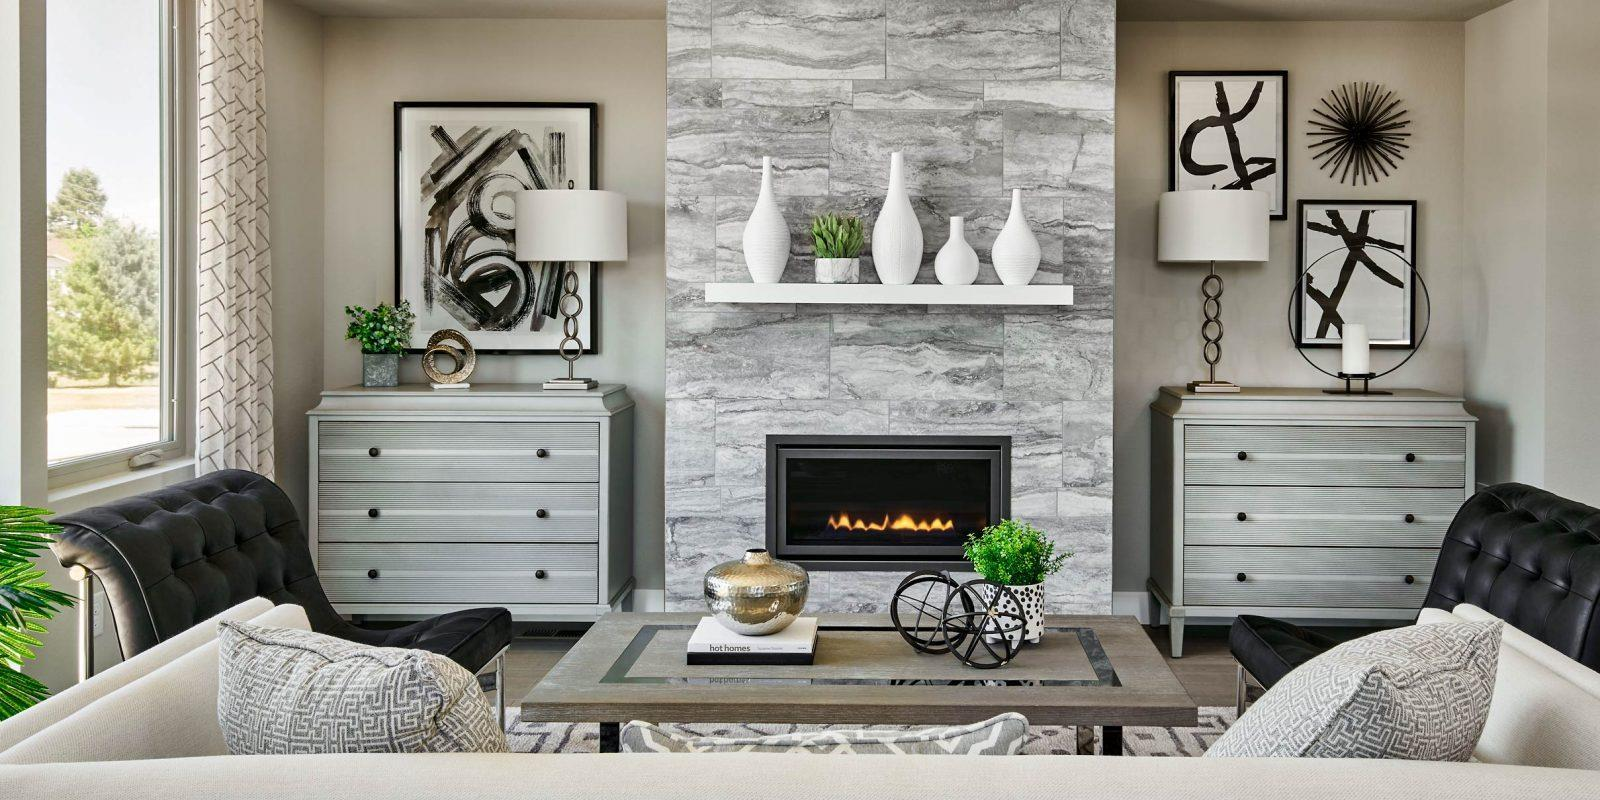 CityHomes at Boulevard One:Community Image